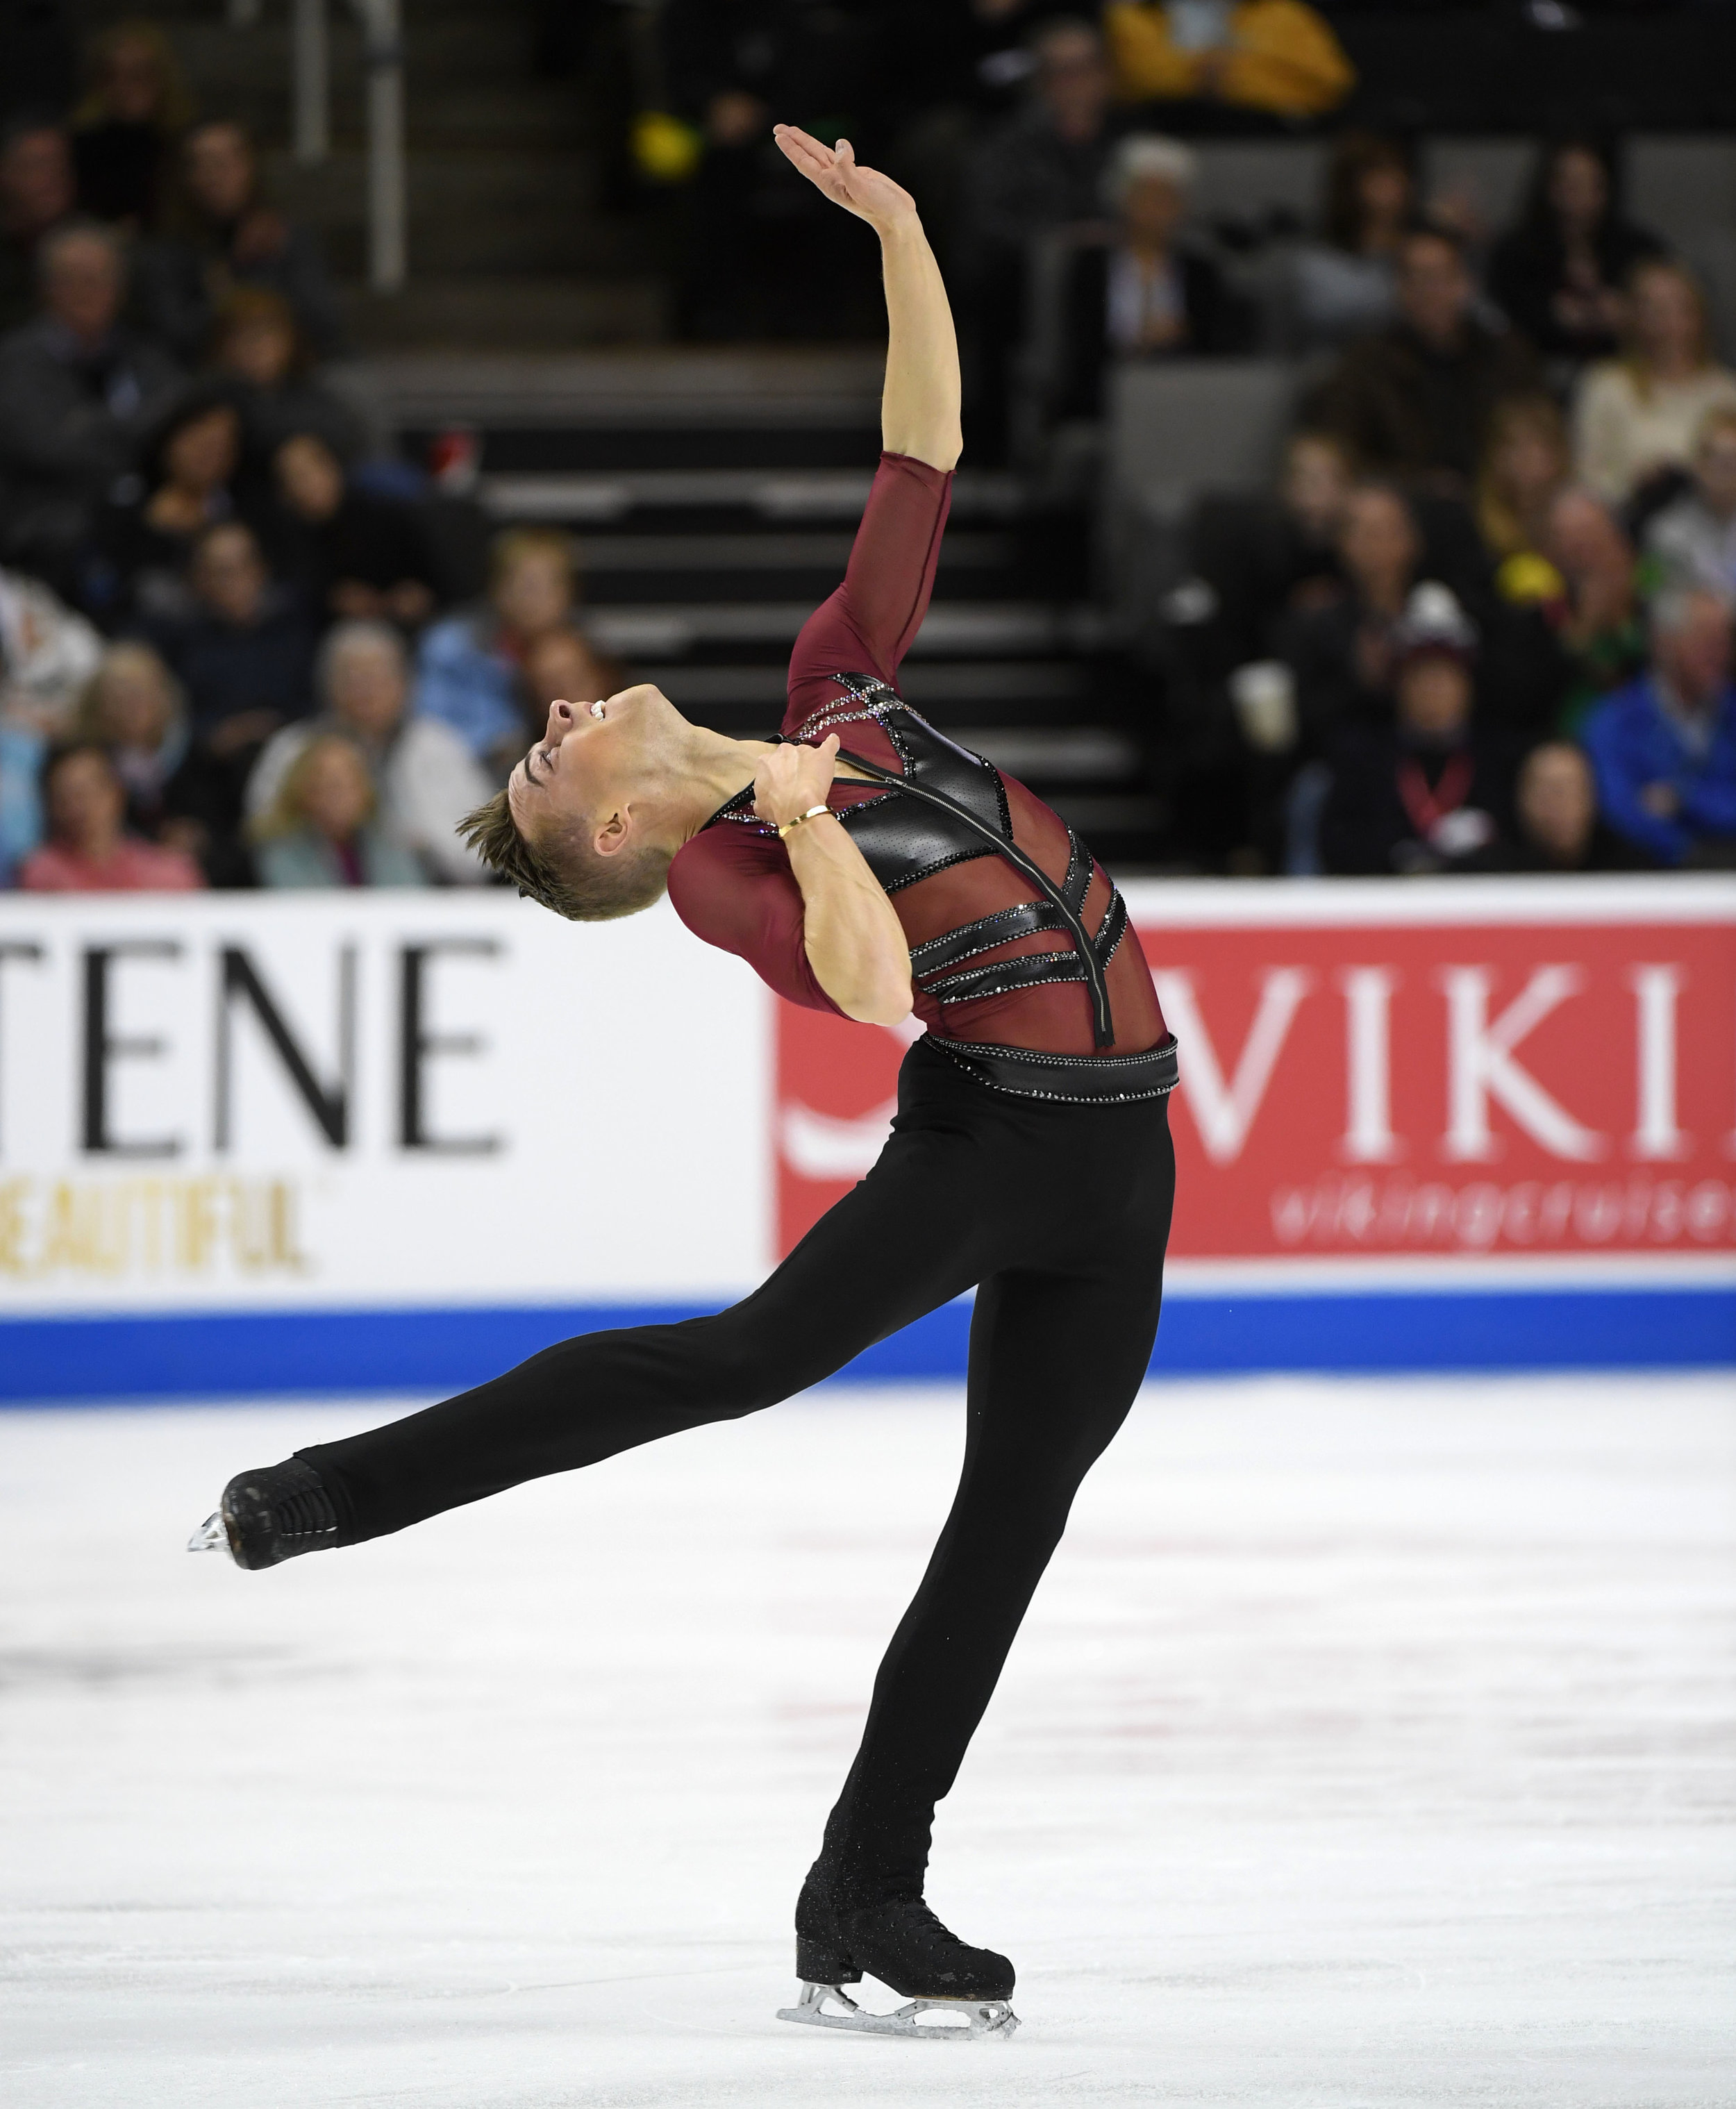 Adam Rippon in an eye-catching spin position. (Jay Adeff / U.S. Figure Skating)